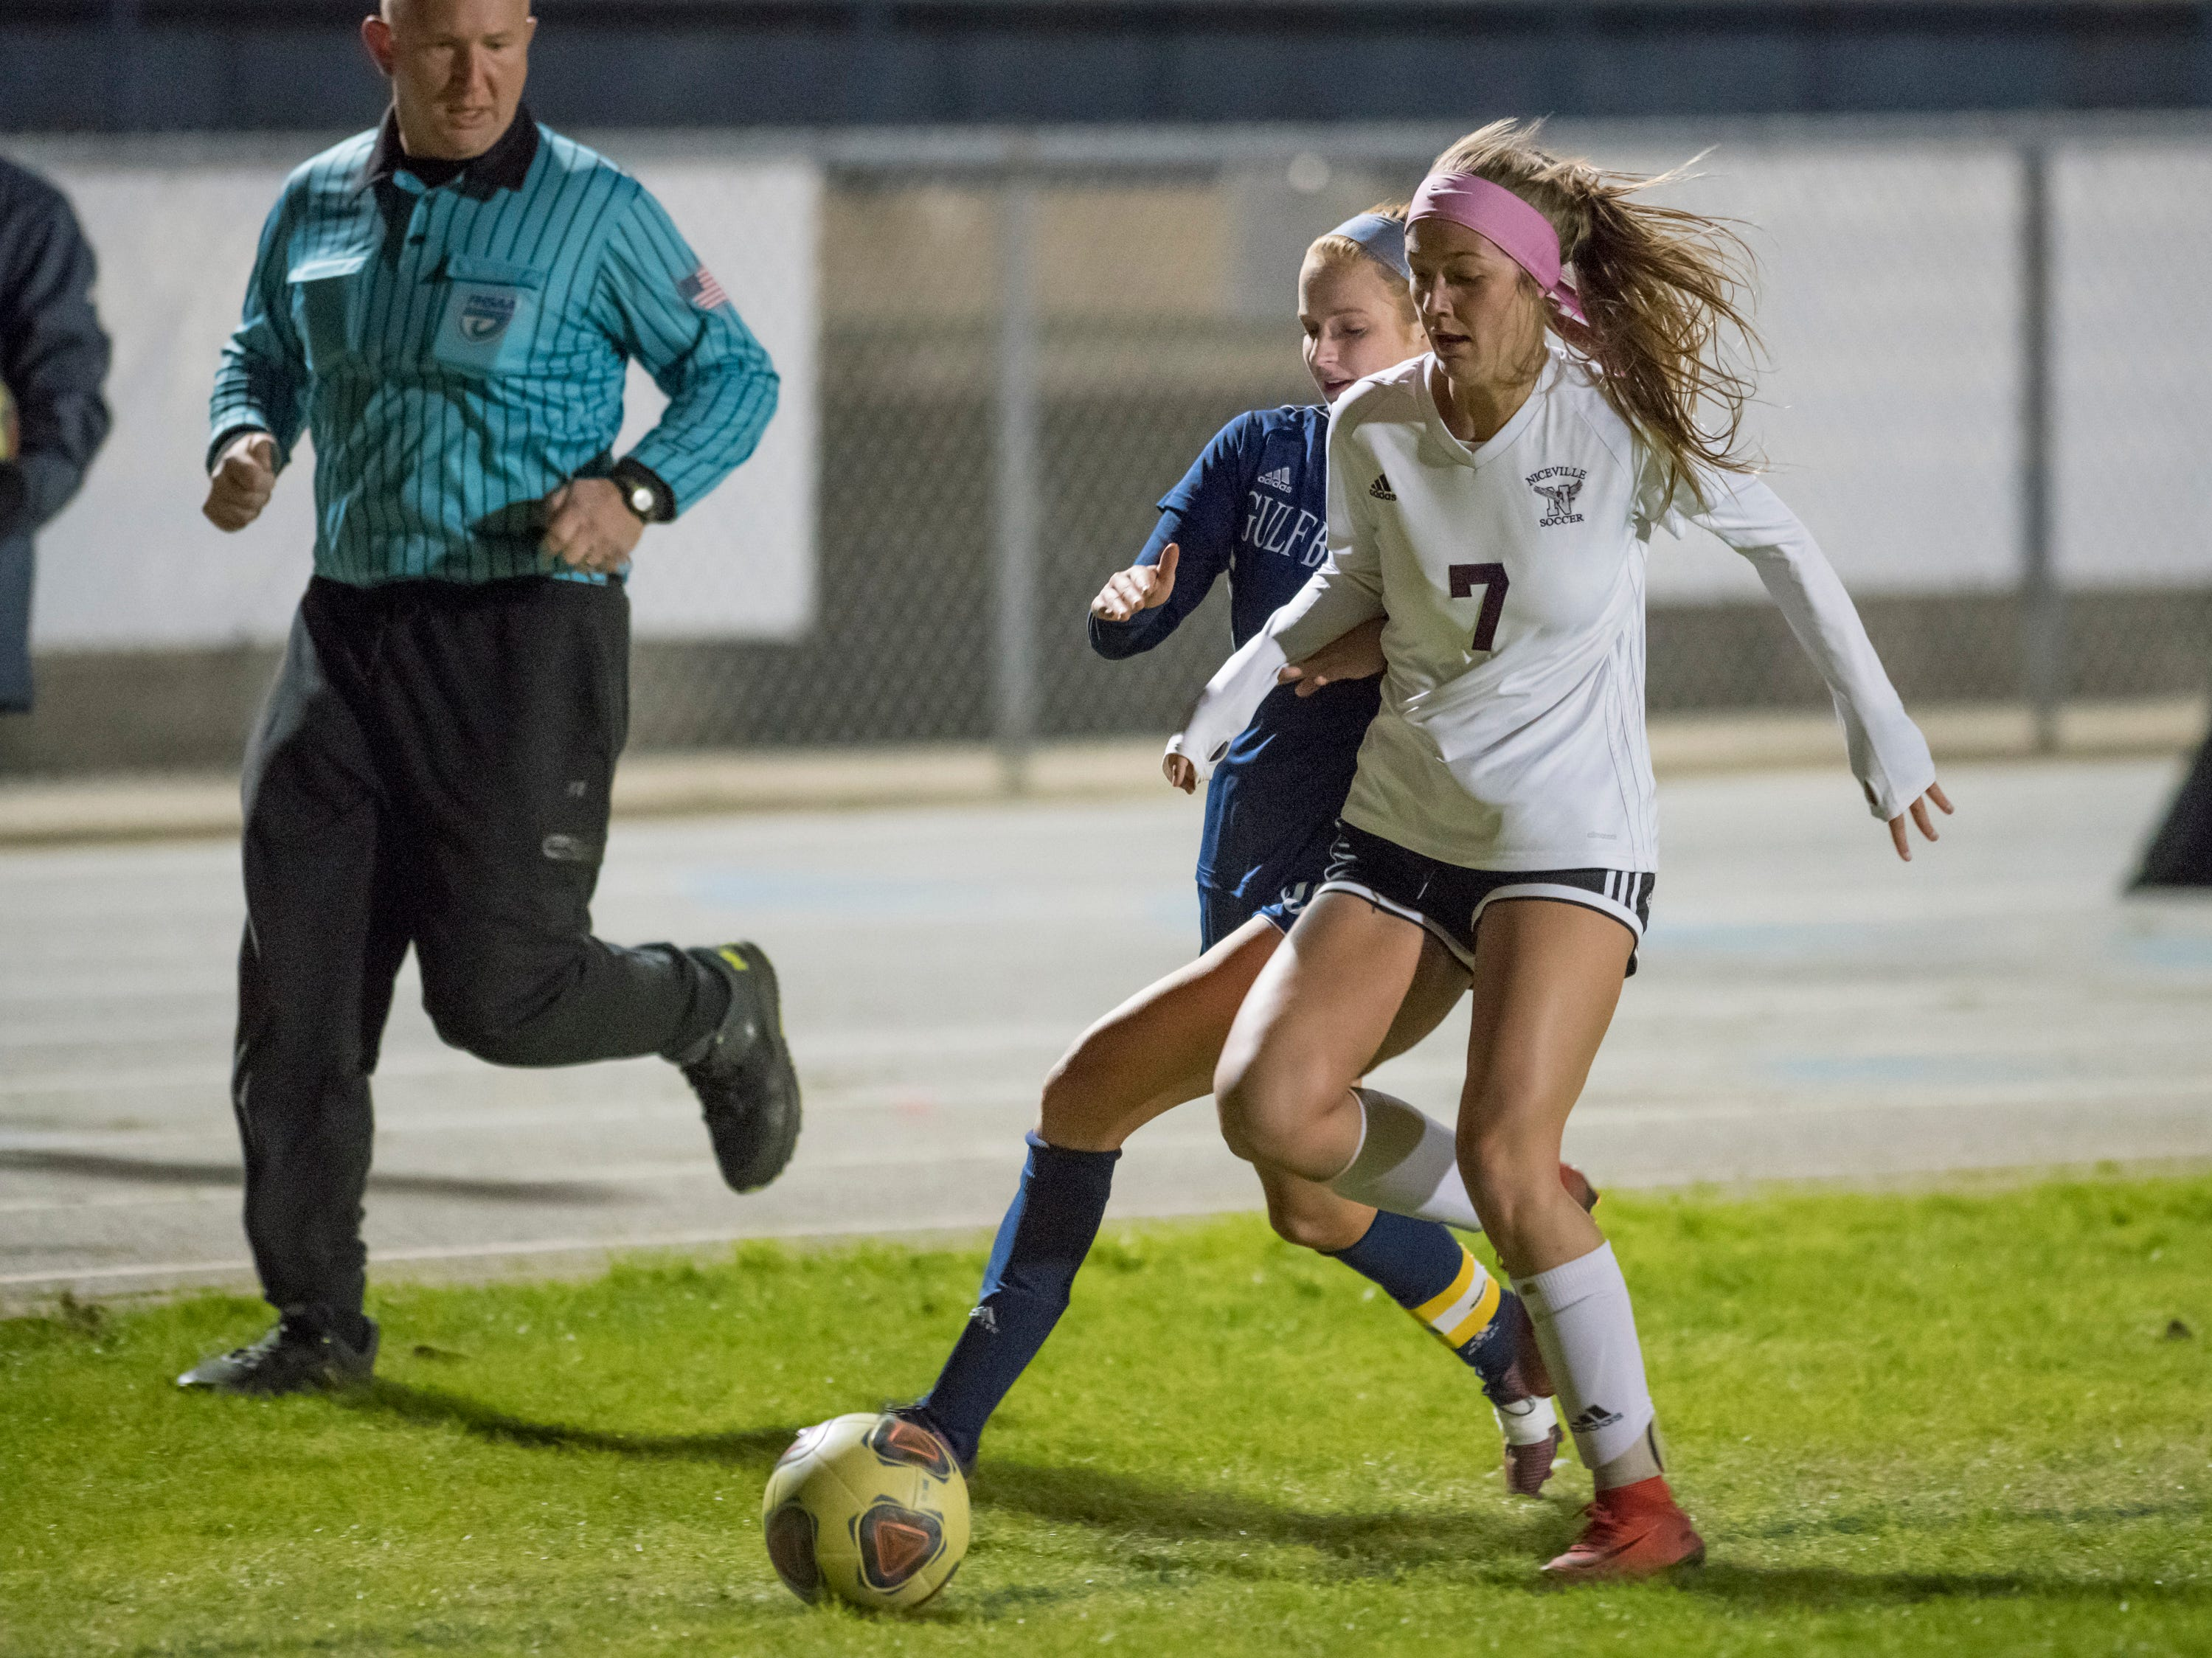 Kristen Goodroe (20)  and Avery Hanson (7) fight for the ball during the Niceville vs Gulf Breeze soccer game at Gulf Breeze High School on Thursday, January 10, 2019.